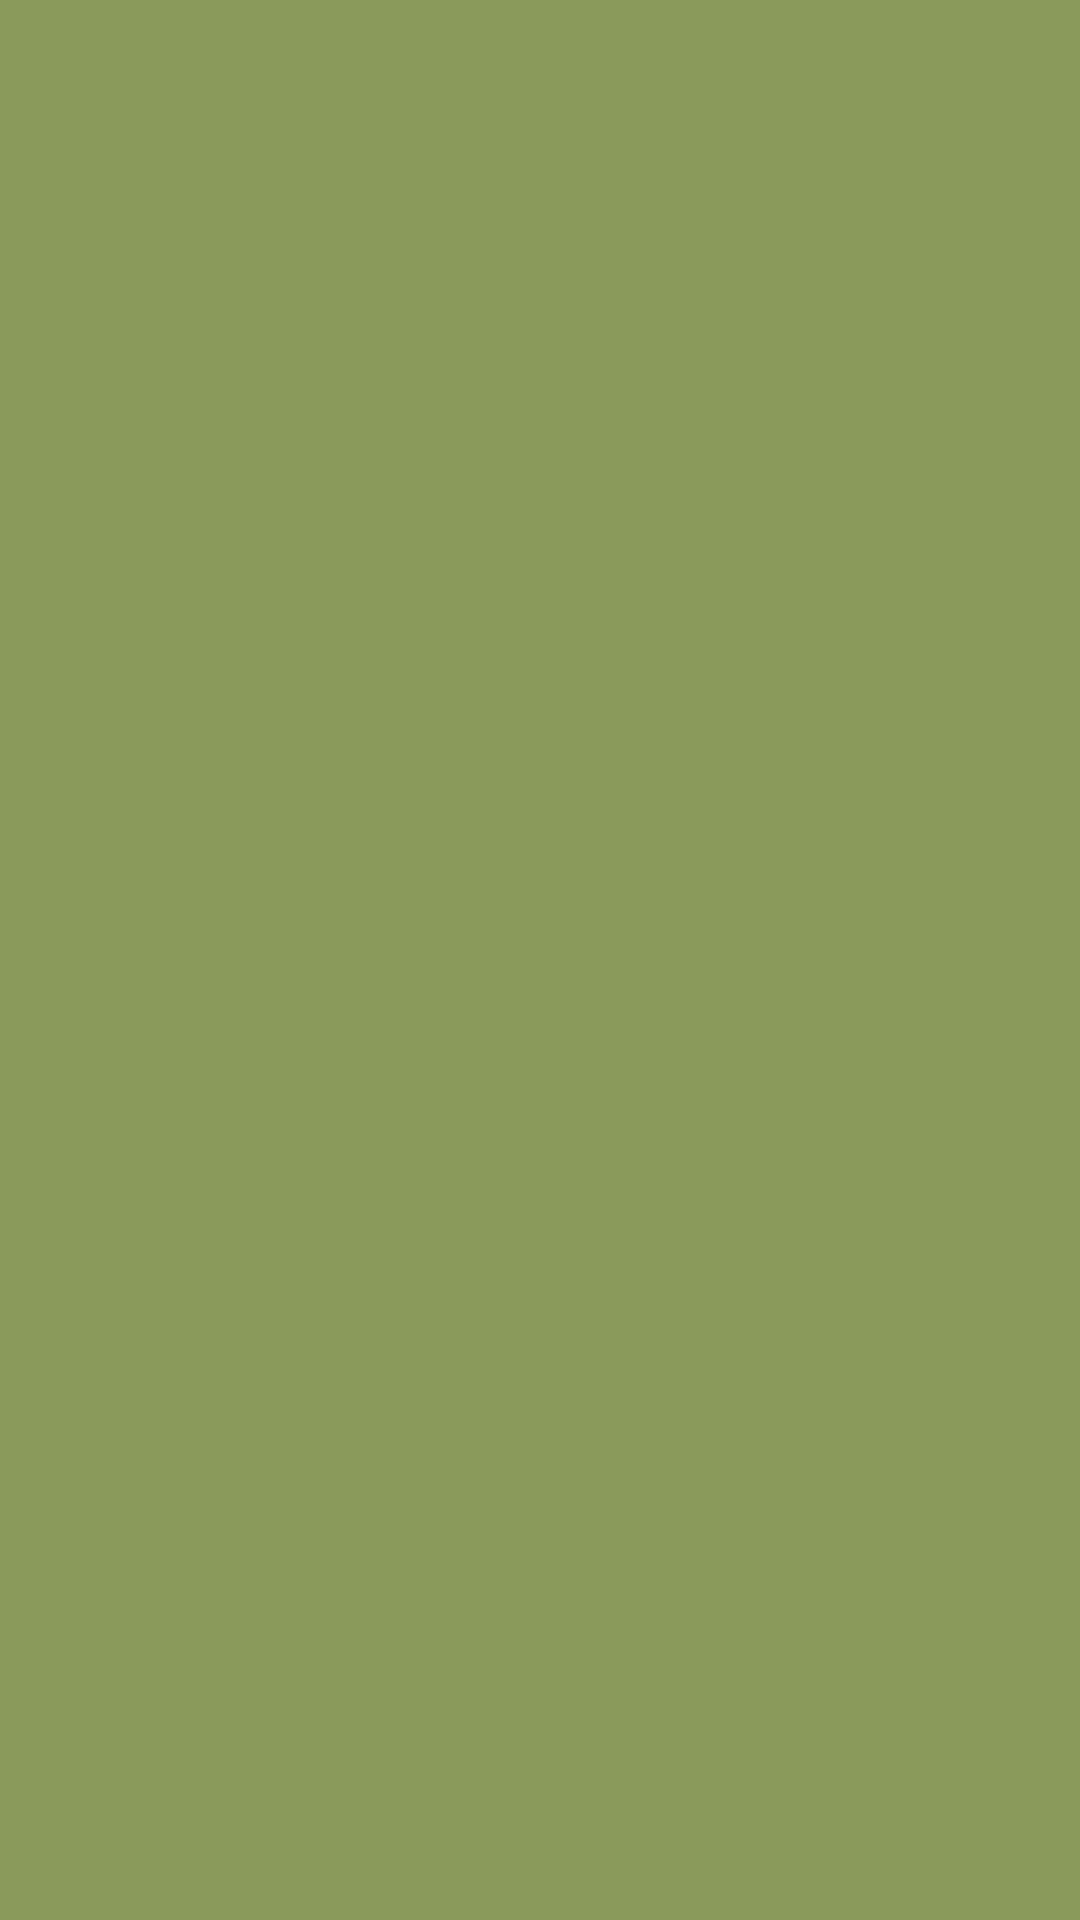 1080x1920 Moss Green Solid Color Background